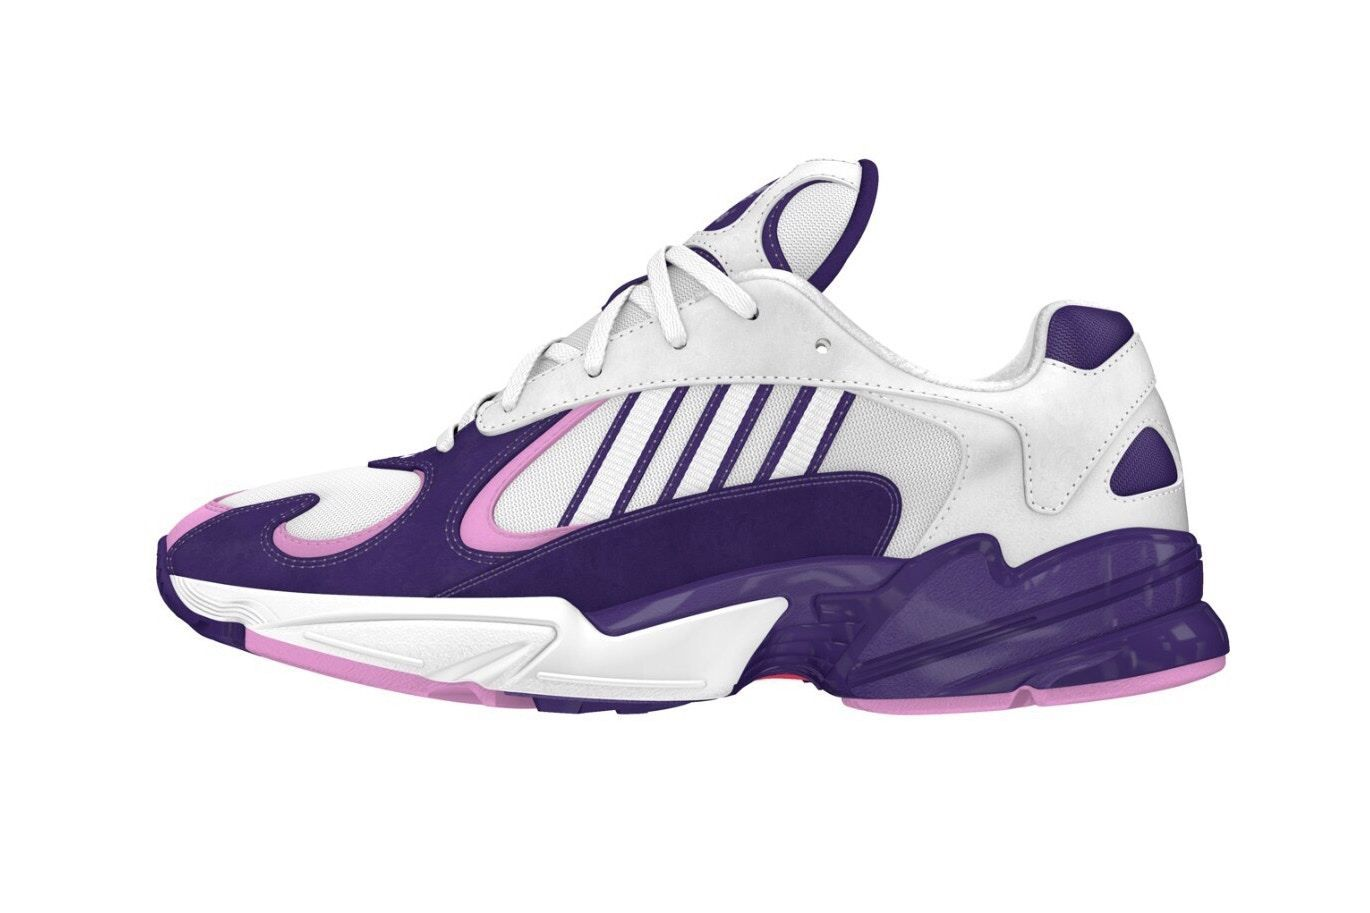 "e03abc9dc46 FYI  Dragonball Z x adidas – New Yung 1 im ""Frieza"" Colorway!  hypesrus   hypesrus"